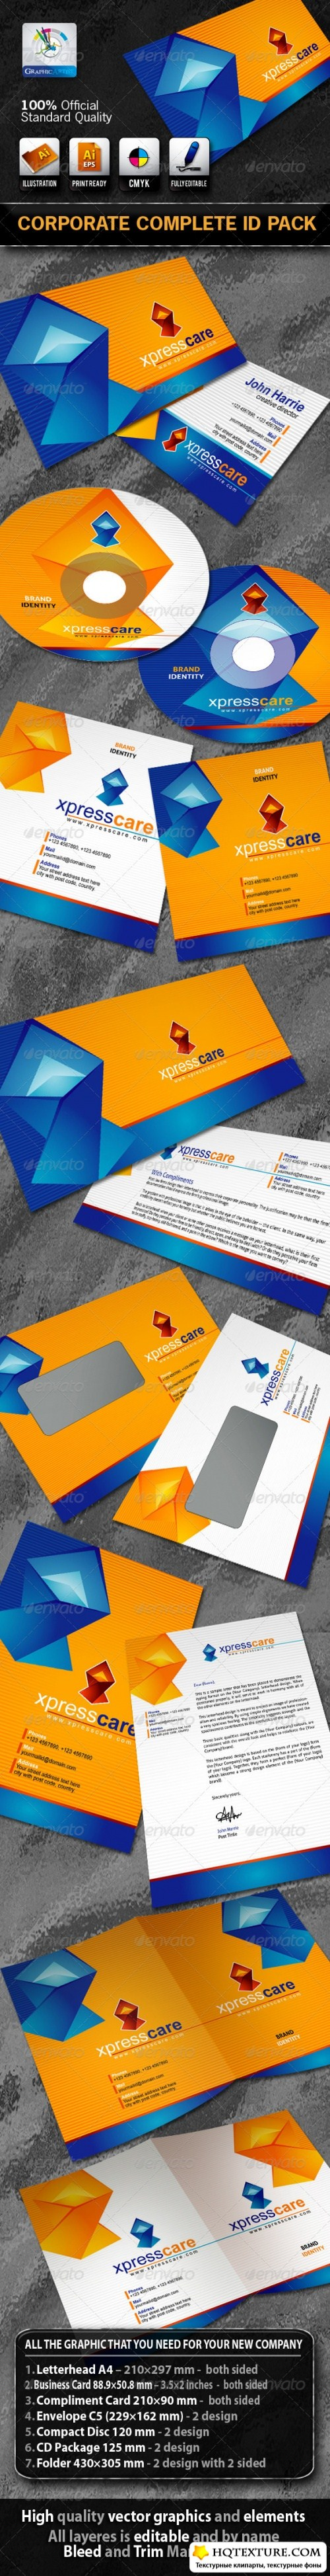 DX Xpress Care Business Corporate ID Pack + Logo